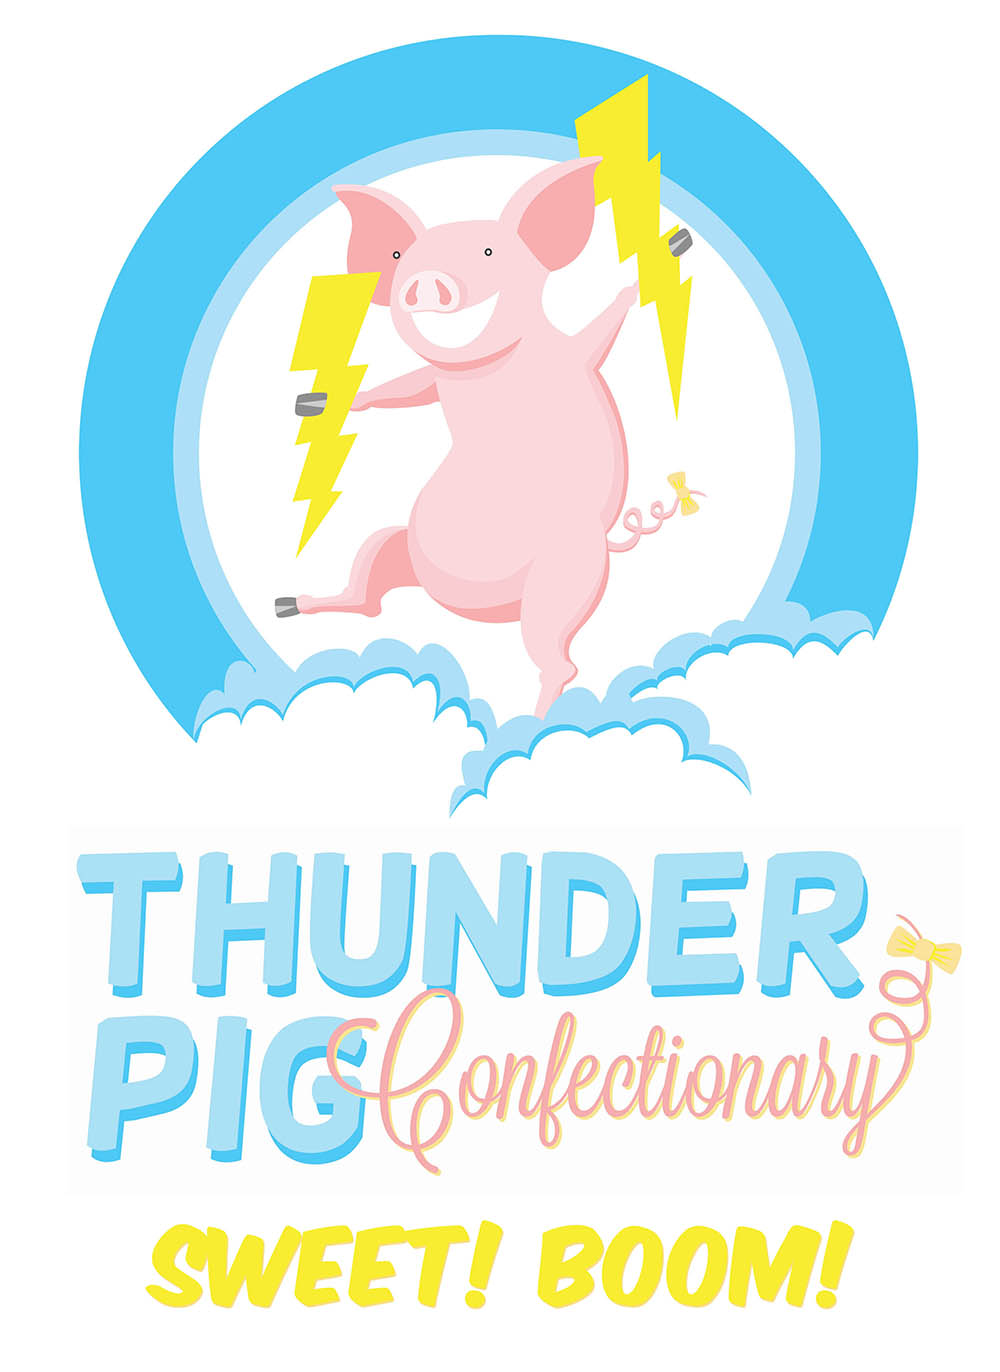 Boom clipart thunder. Union kitchen pig confectionery